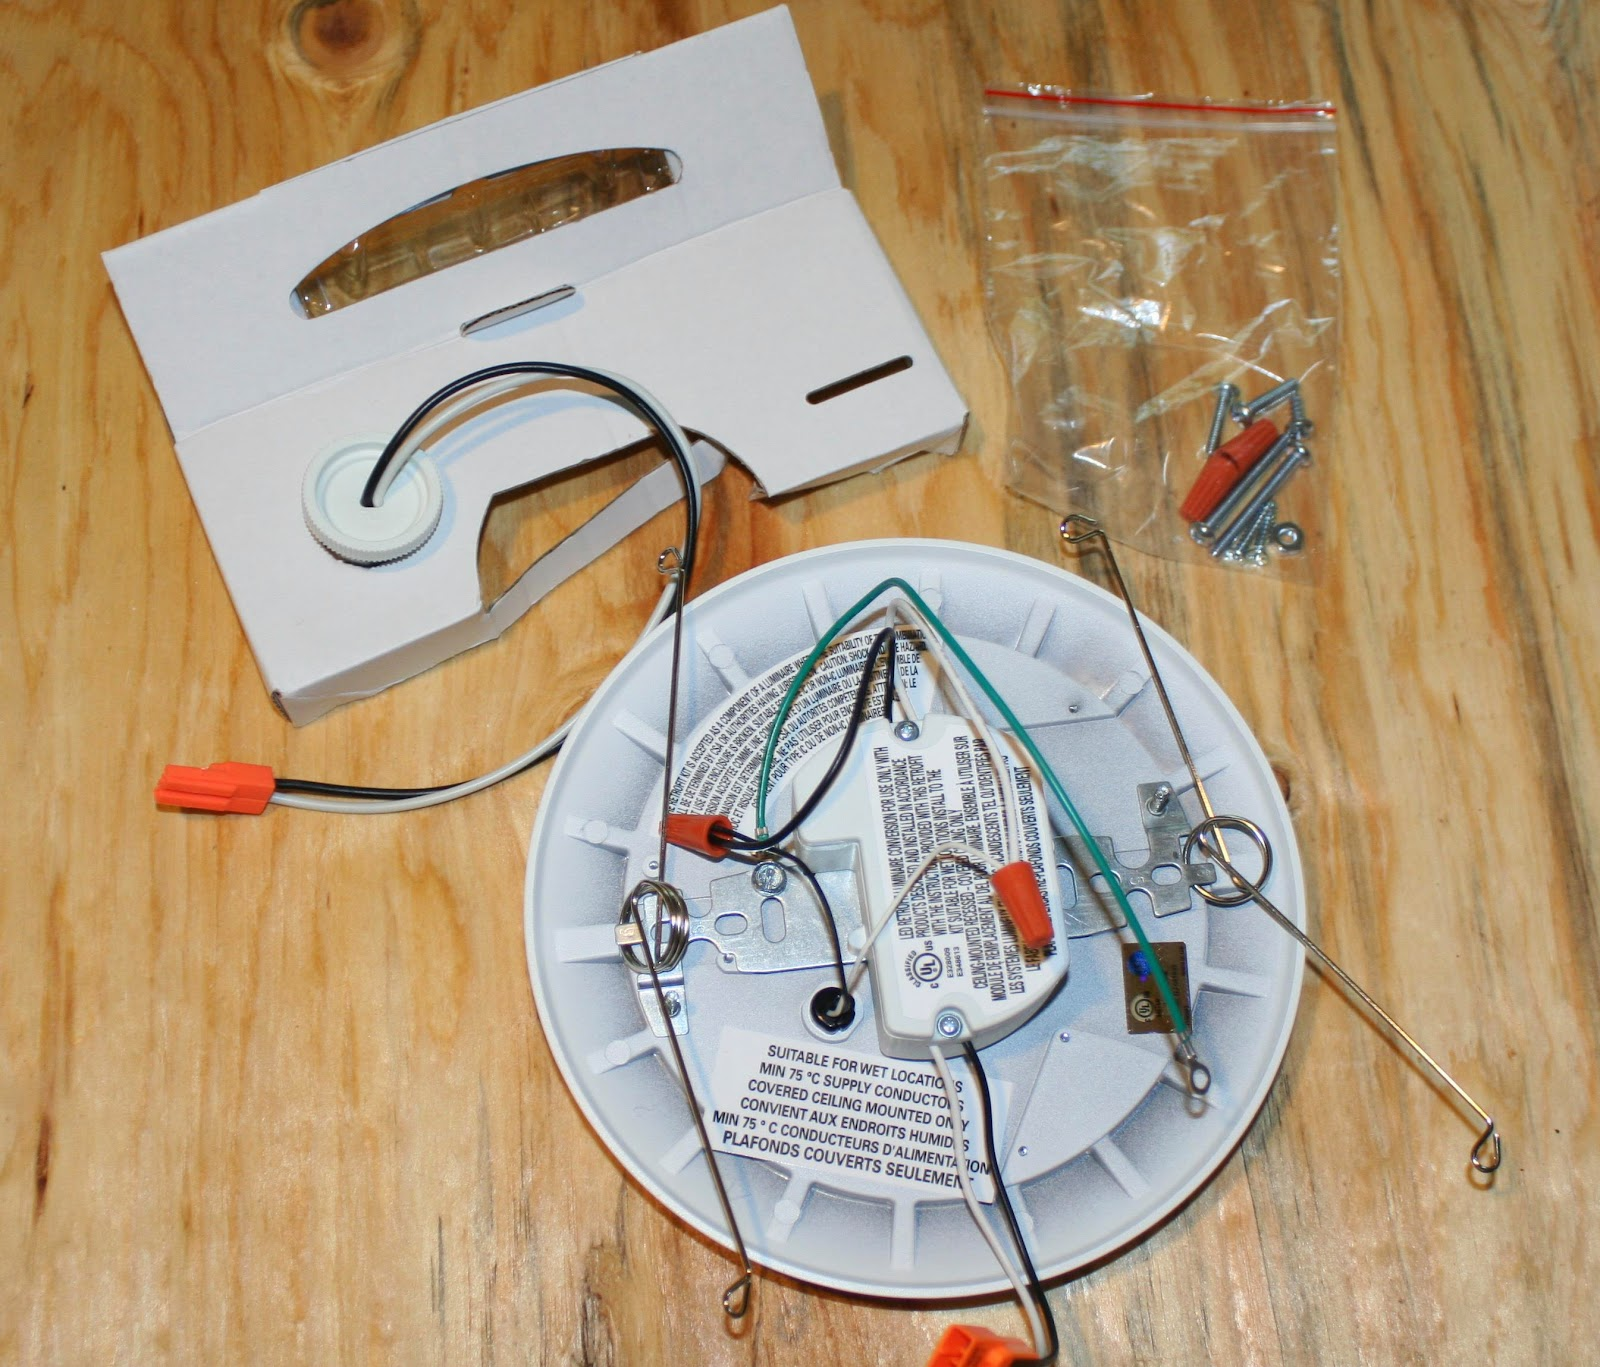 Energy Conservation How To: Nicor DLS, An Important New LED Plate Light